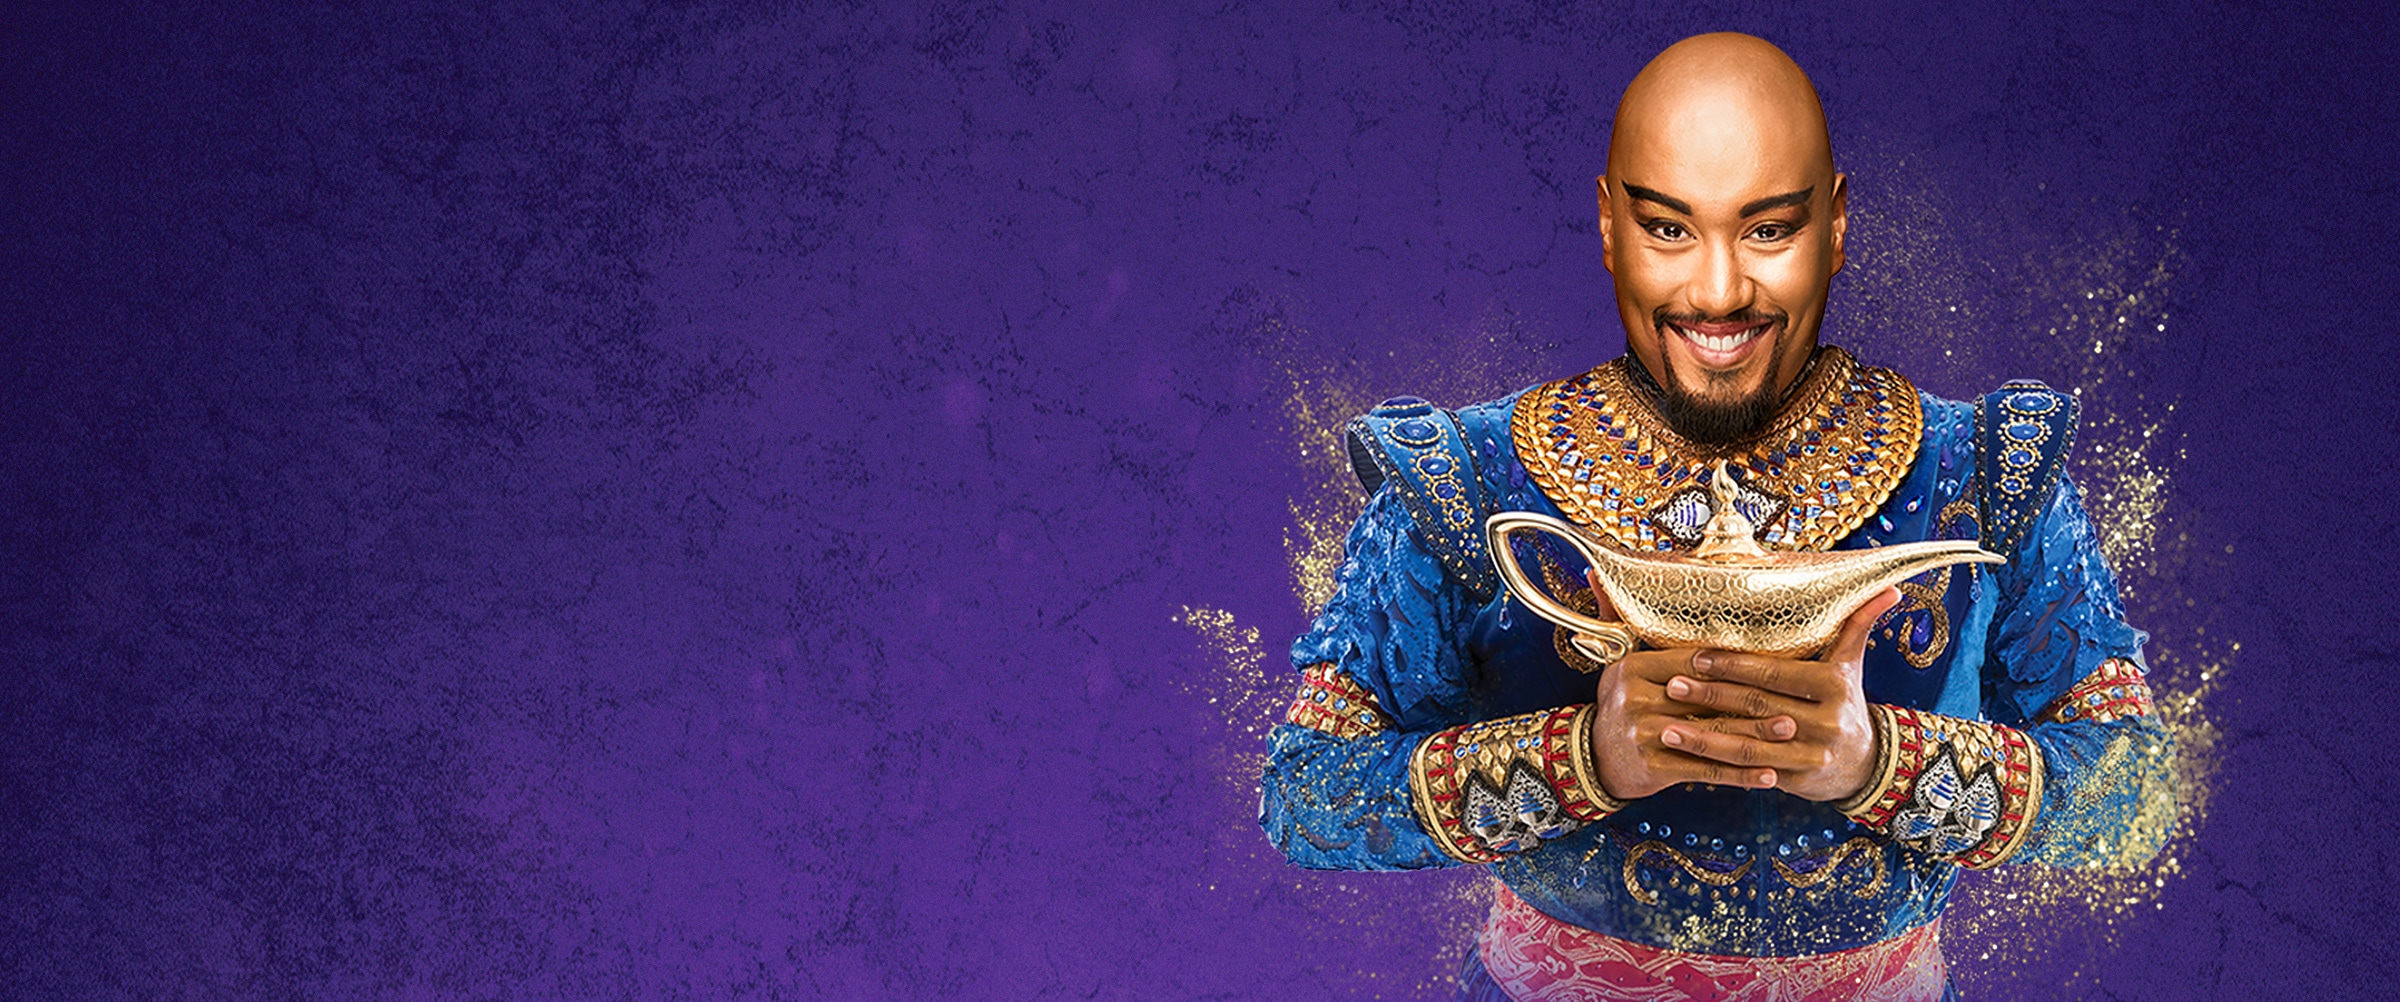 Live Shows AU - Aladdin Musical Genie - Hero